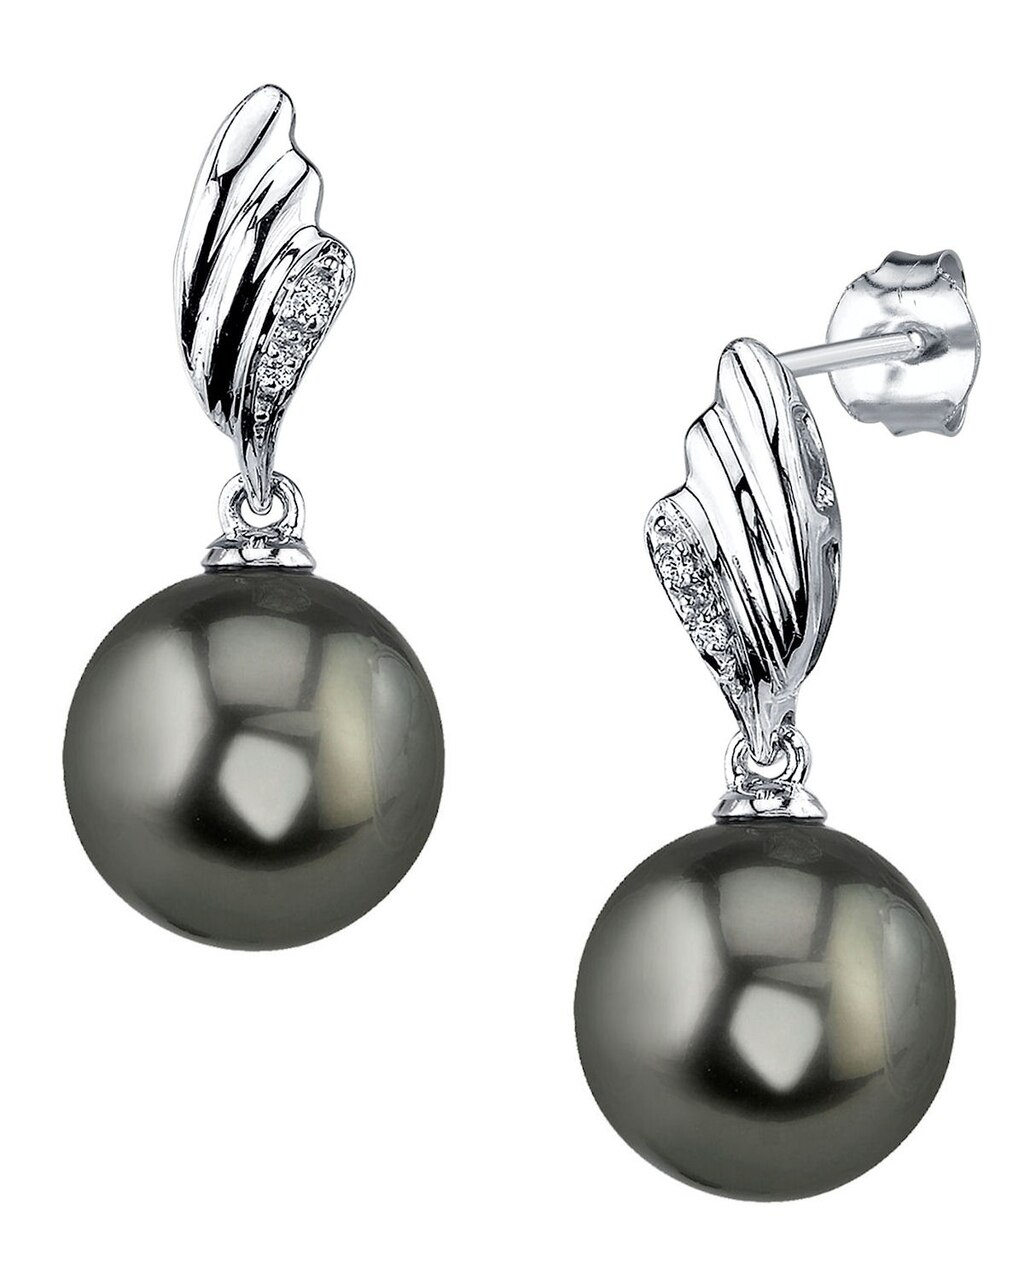 Exquisite earrings feature two 9.0-10.0mm  Tahitian South Sea pearls, selected for their luminous luster